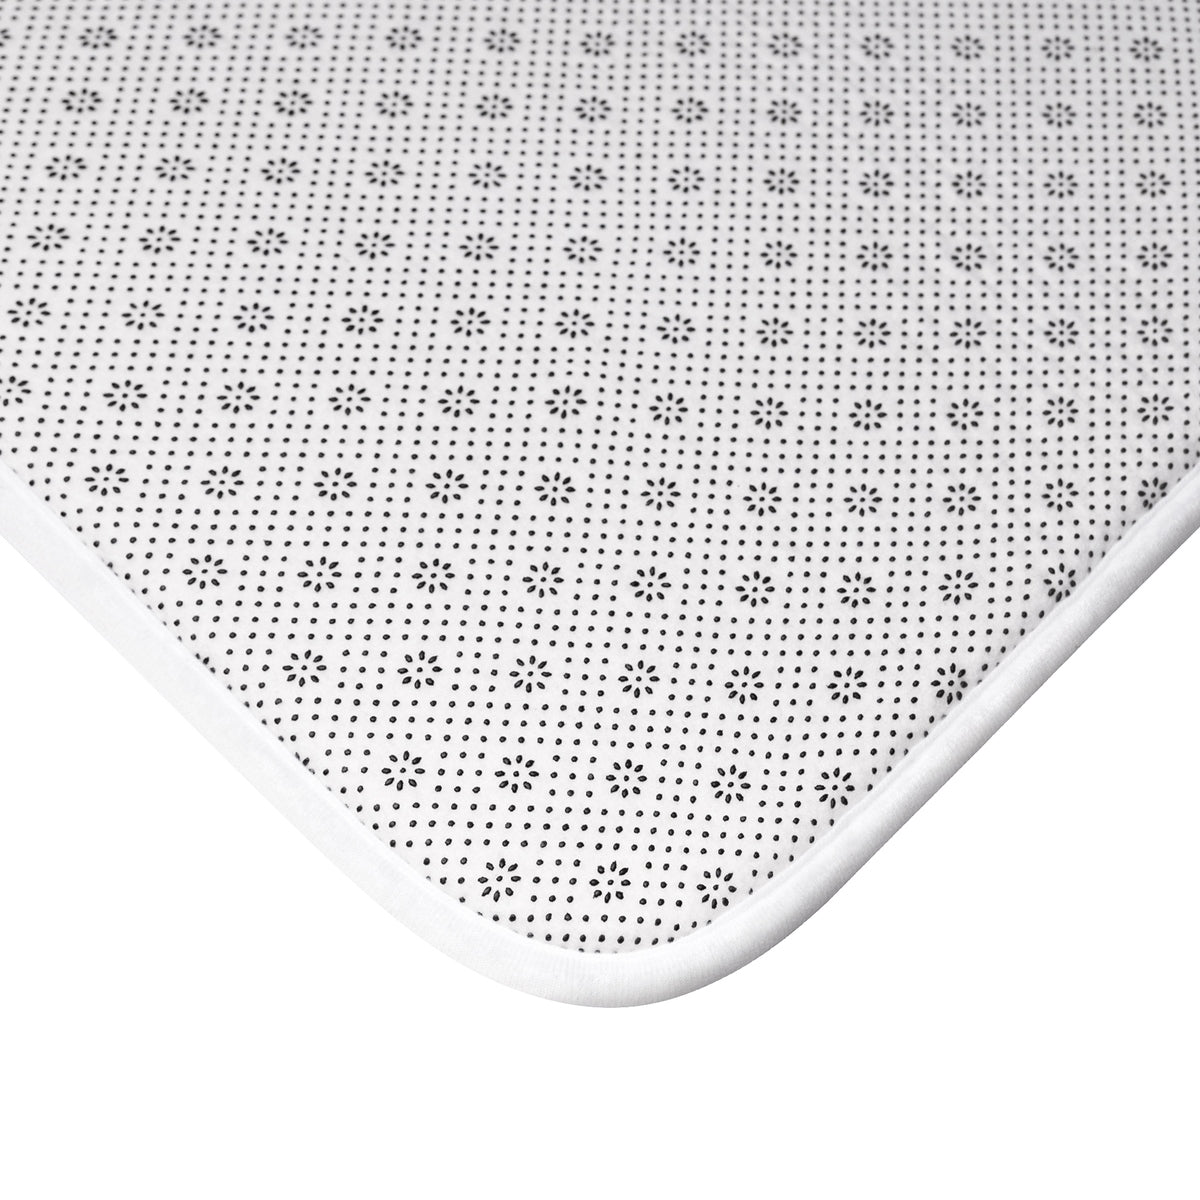 Backing of Memory foam microfiber bath rug